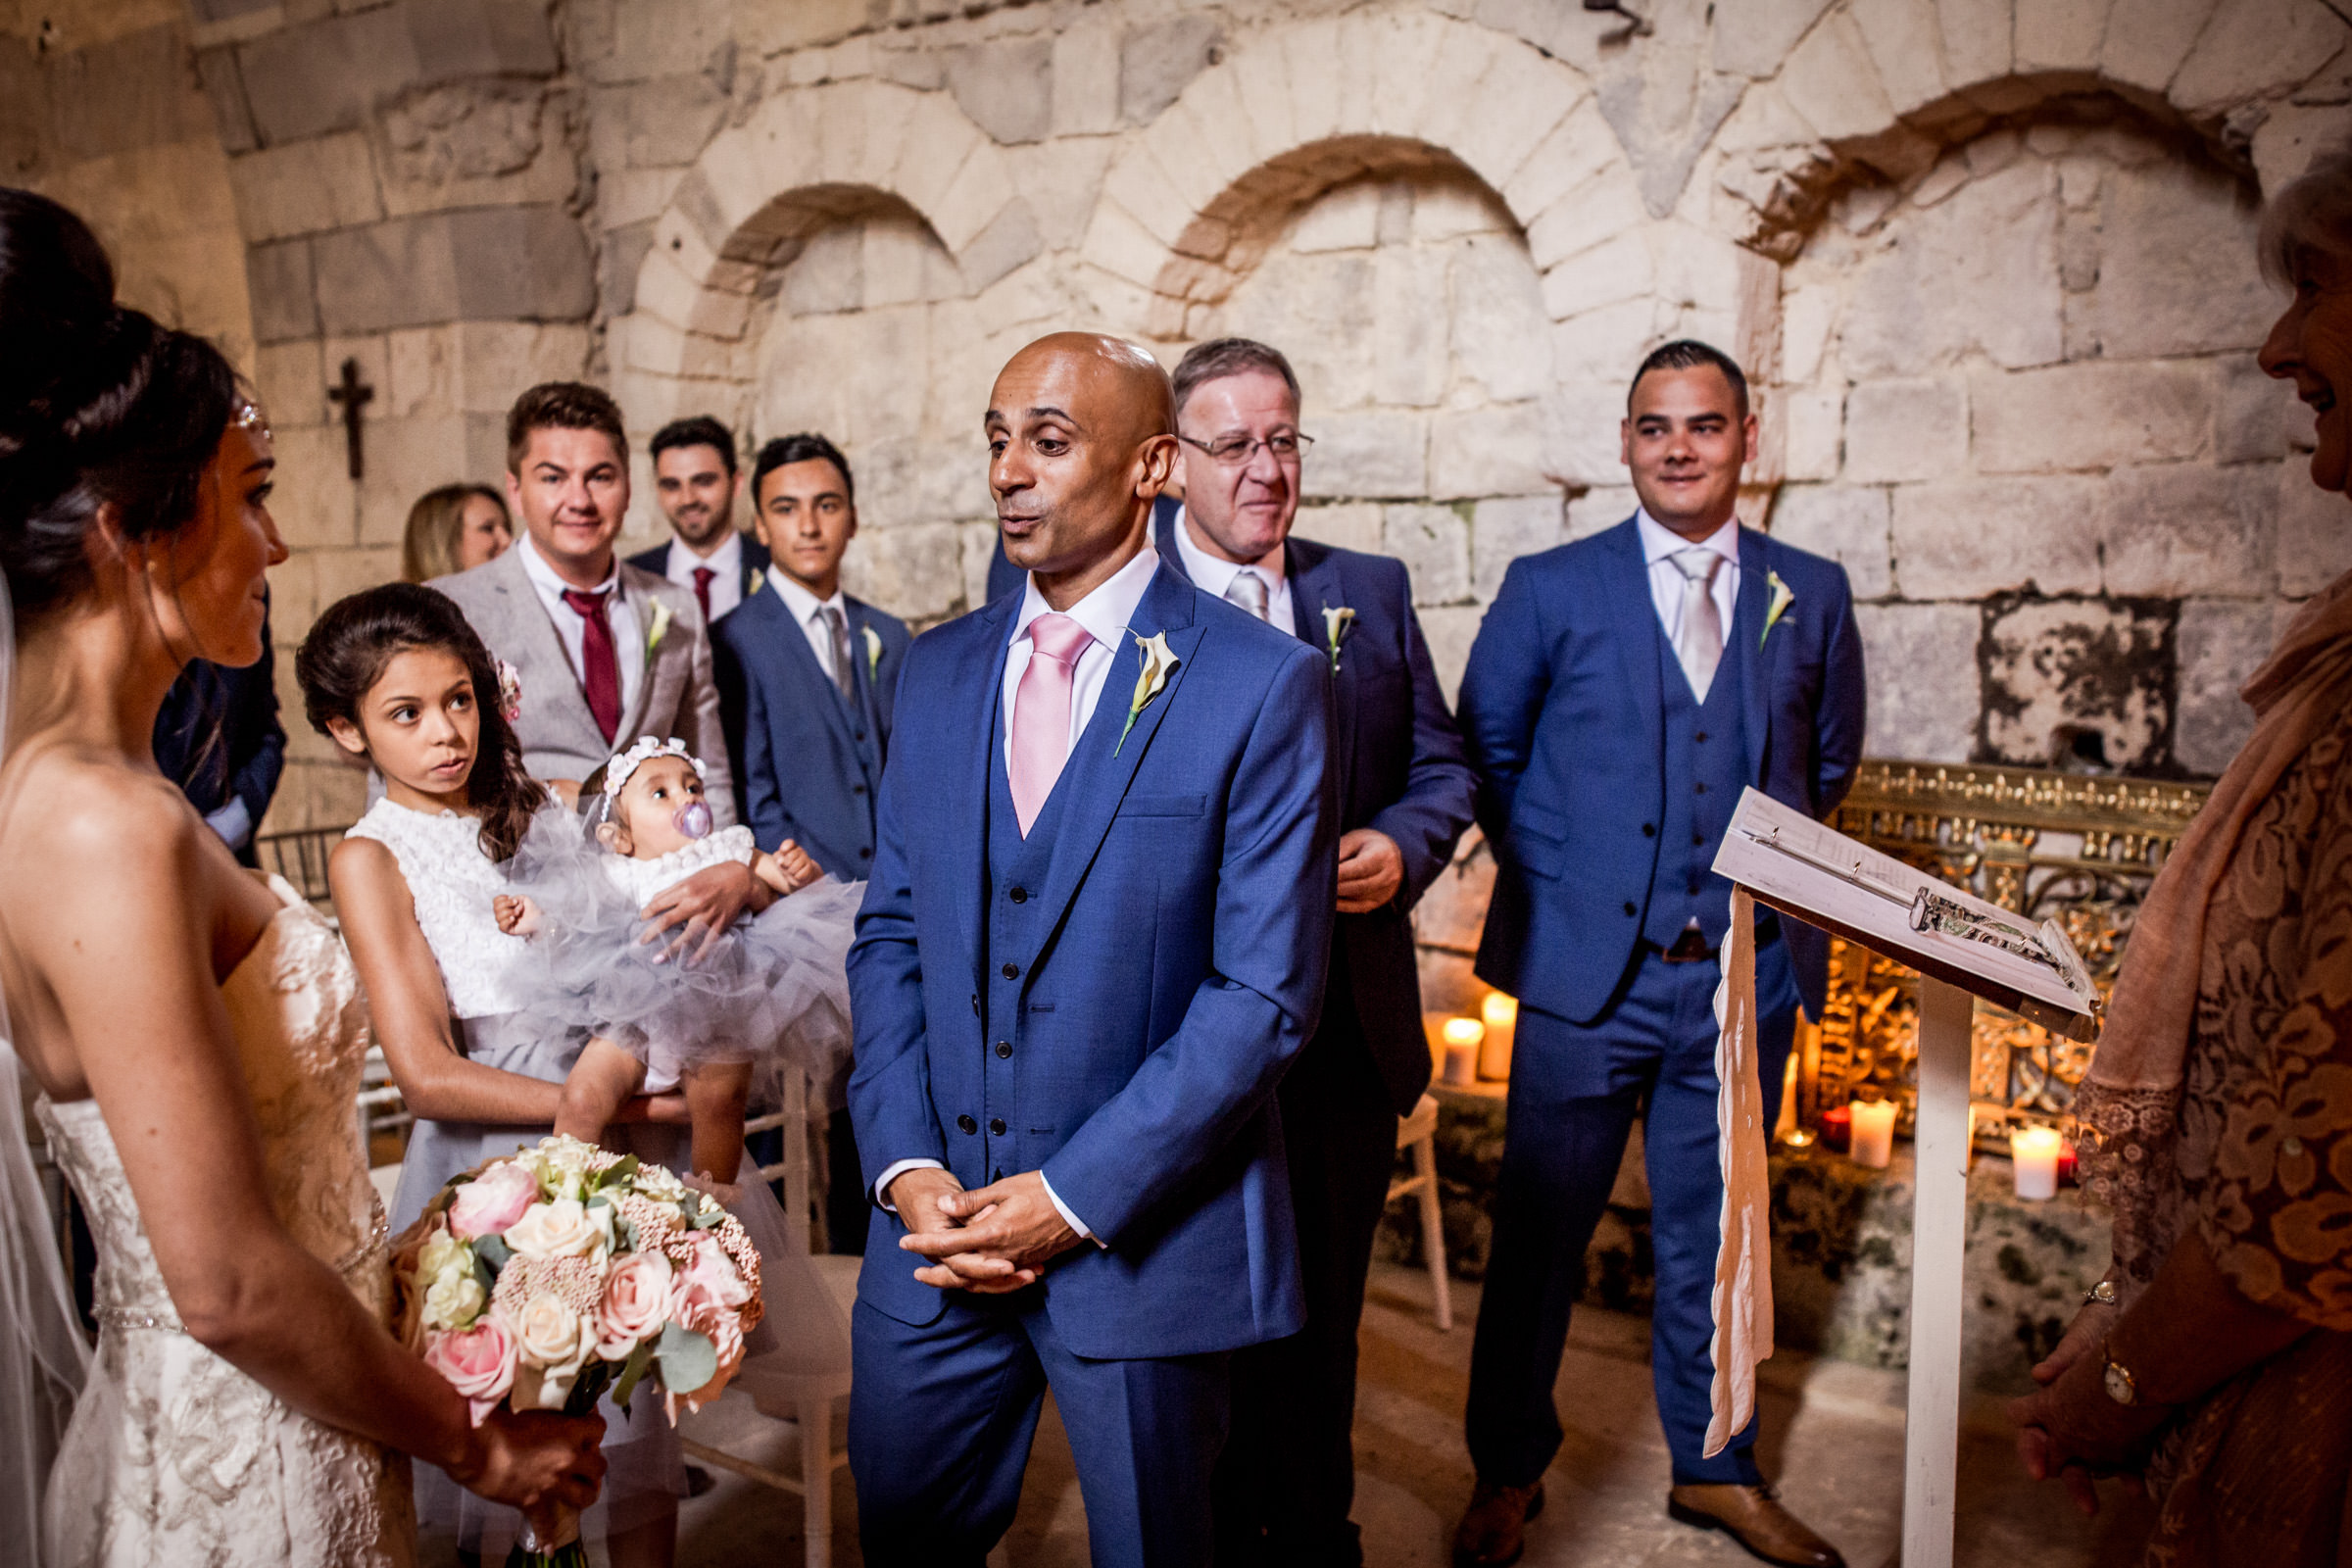 Uk Wedding photographers working at chateau de lisse in gascony 029.jpg